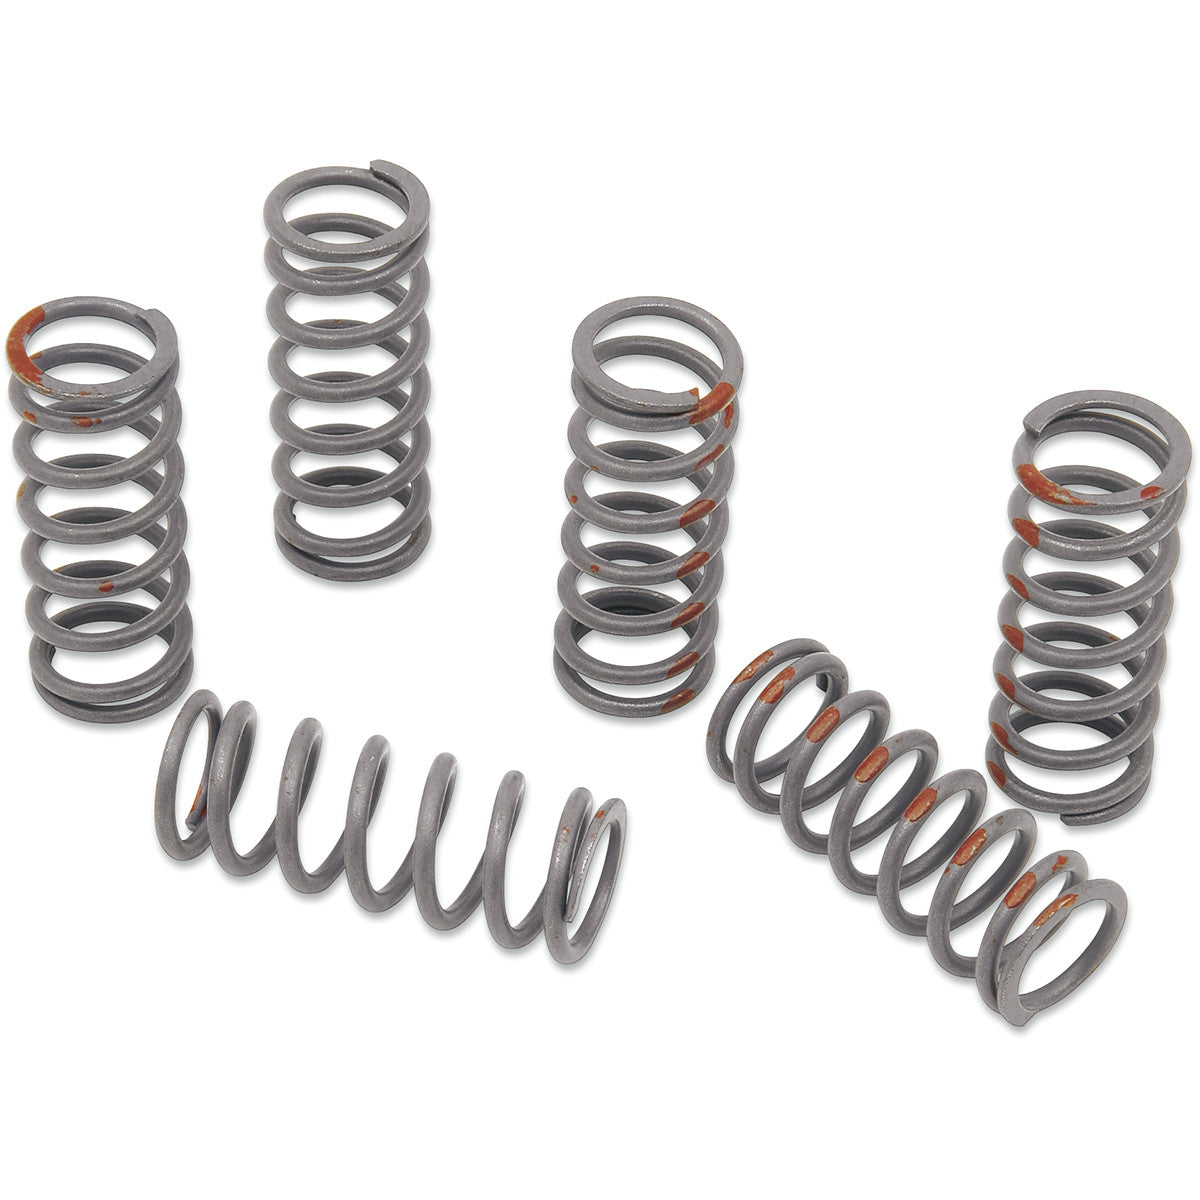 KGS-025 KG POWERSPORTS High Performance Clutch Spring Set CLUTCH SPRING SET